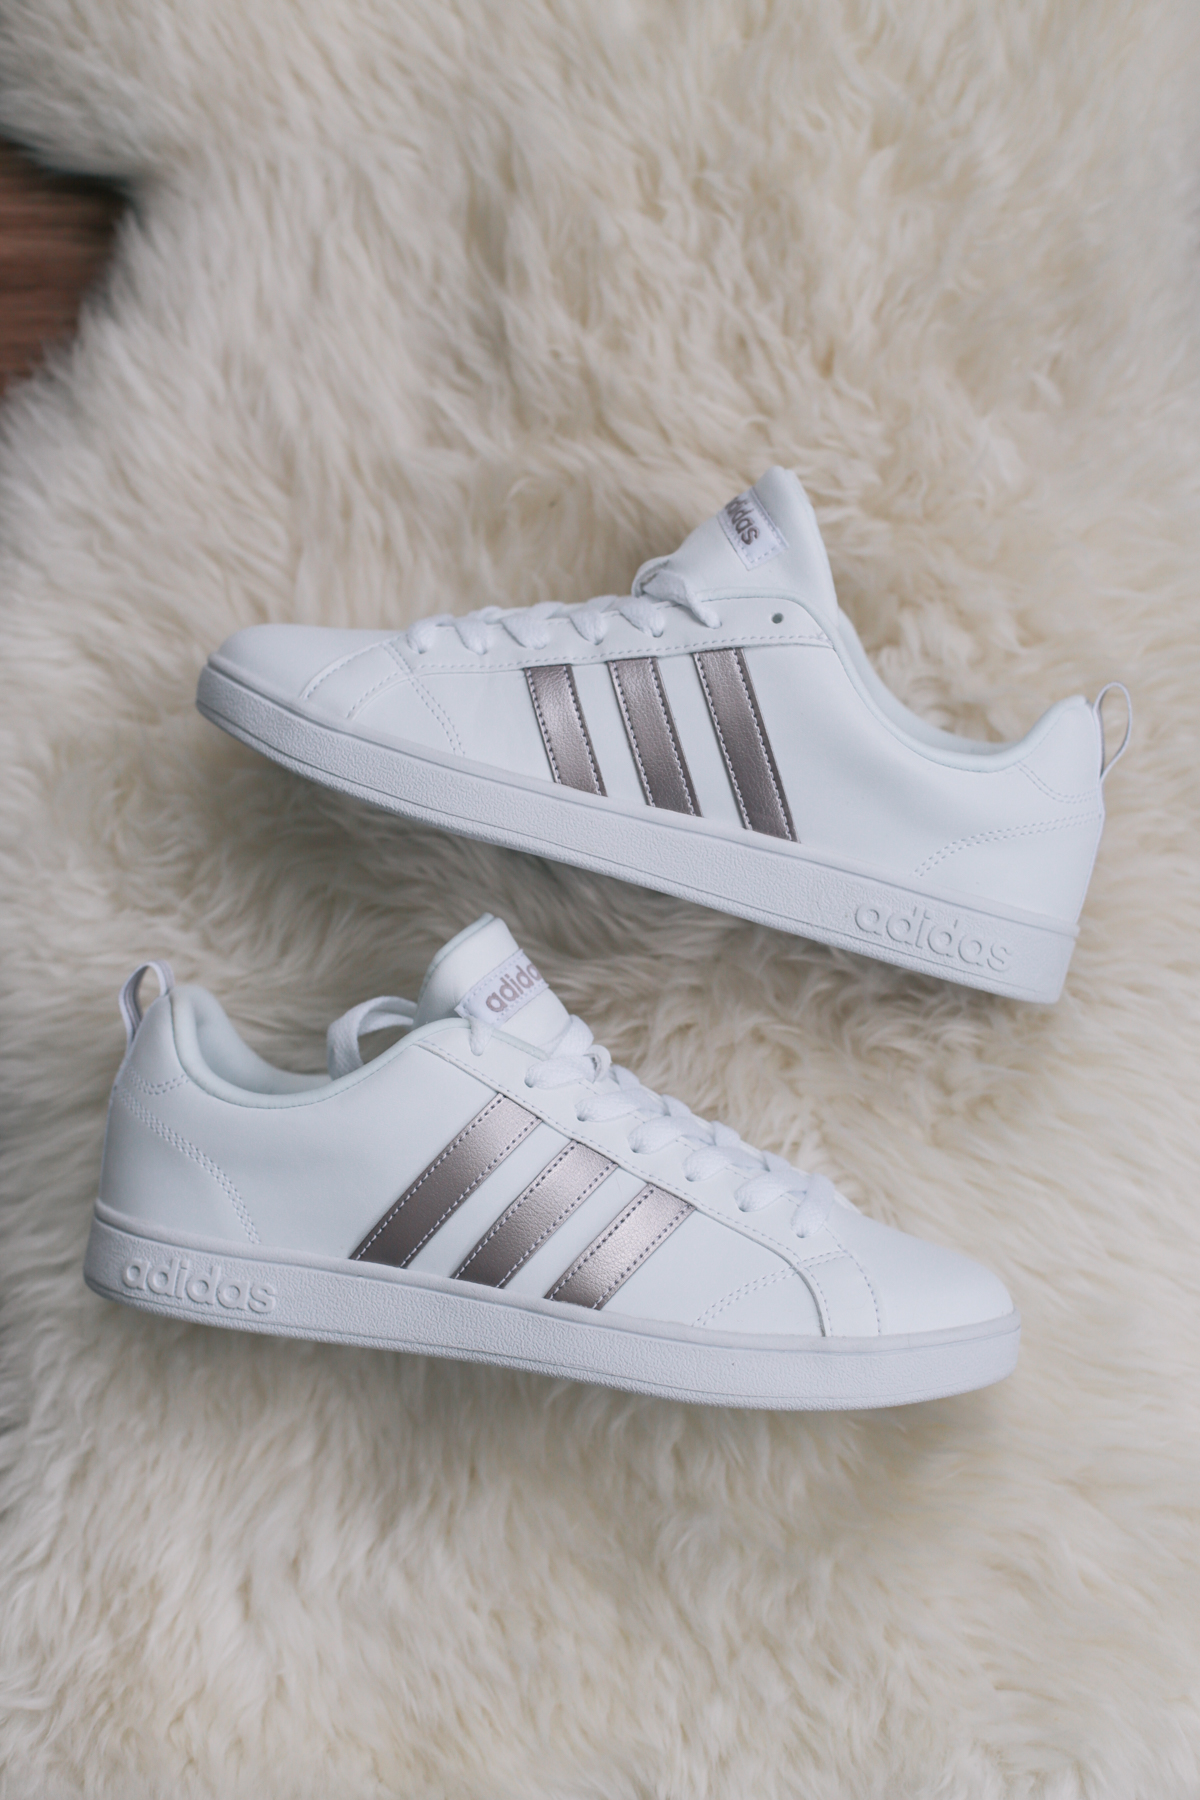 adidas neo advantage (1 of 1)